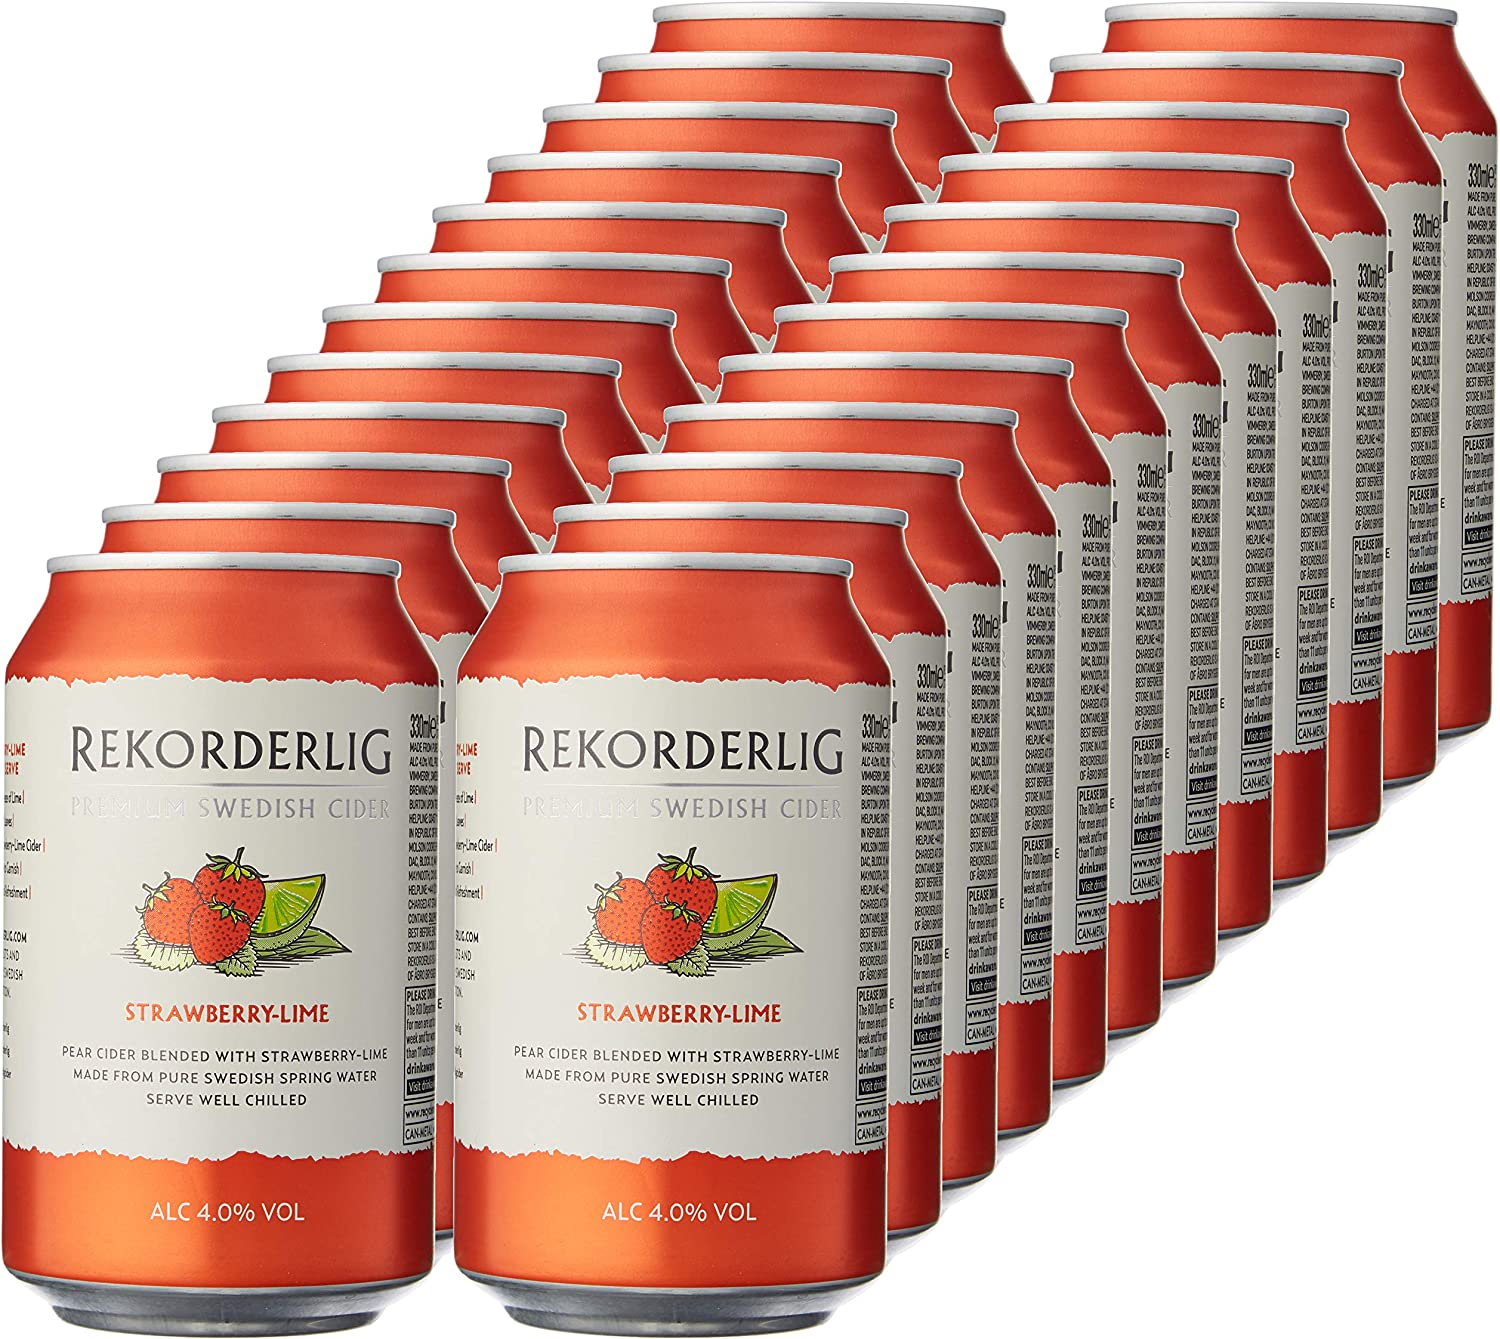 Rekorderlig Premium Strawberry & Lime Cider 24 X 330ml Cans